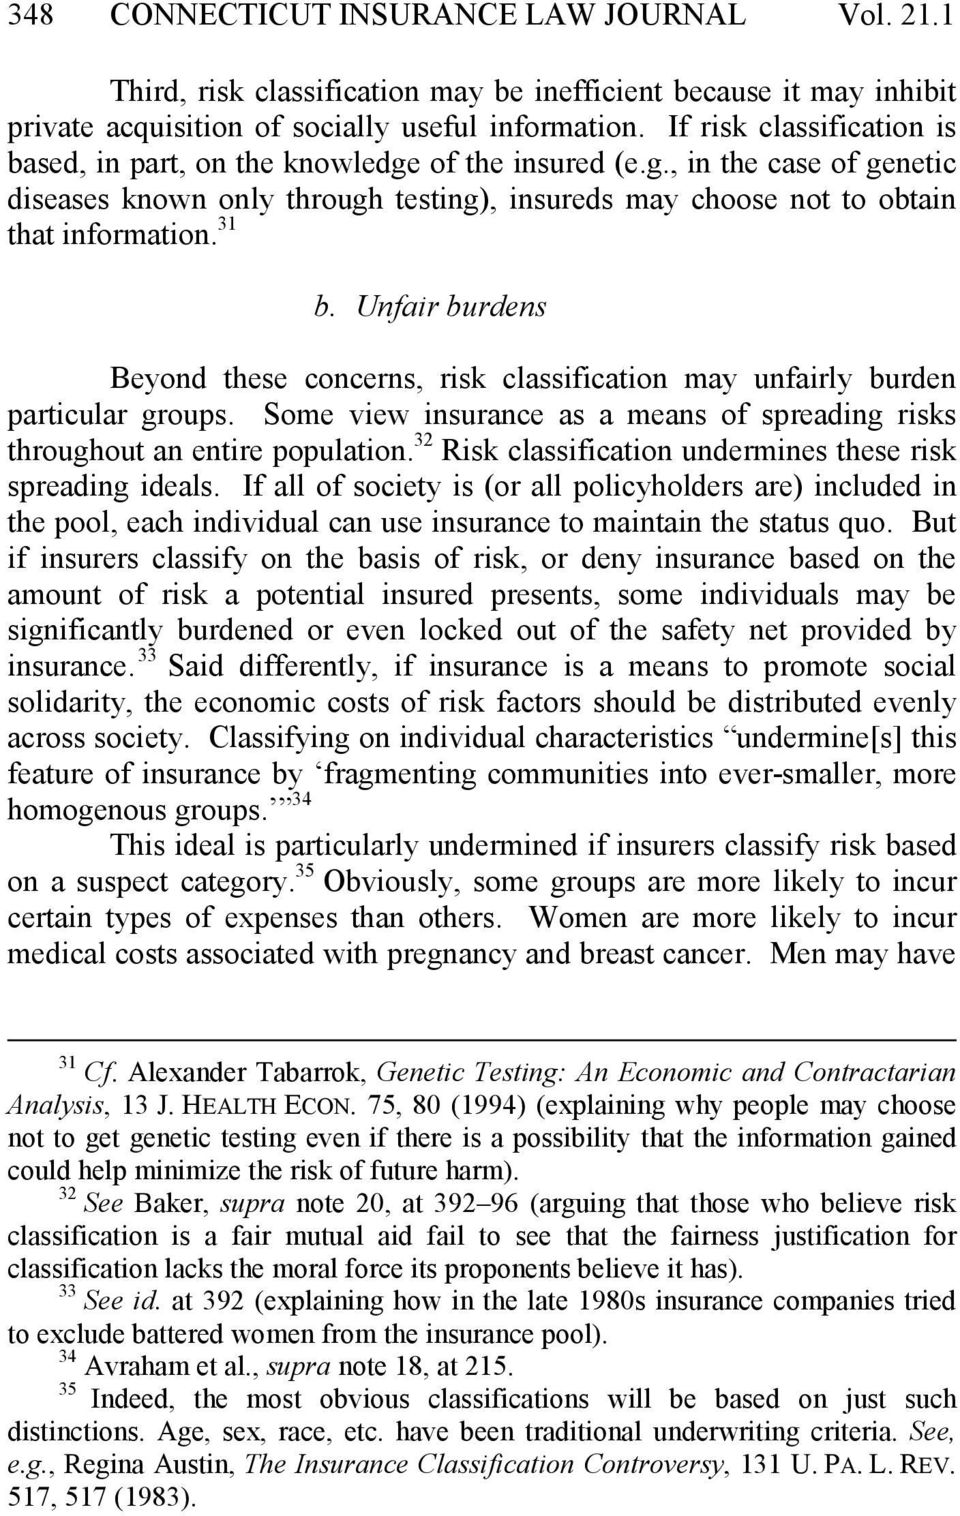 Unfair burdens Beyond these concerns, risk classification may unfairly burden particular groups. Some view insurance as a means of spreading risks throughout an entire population.